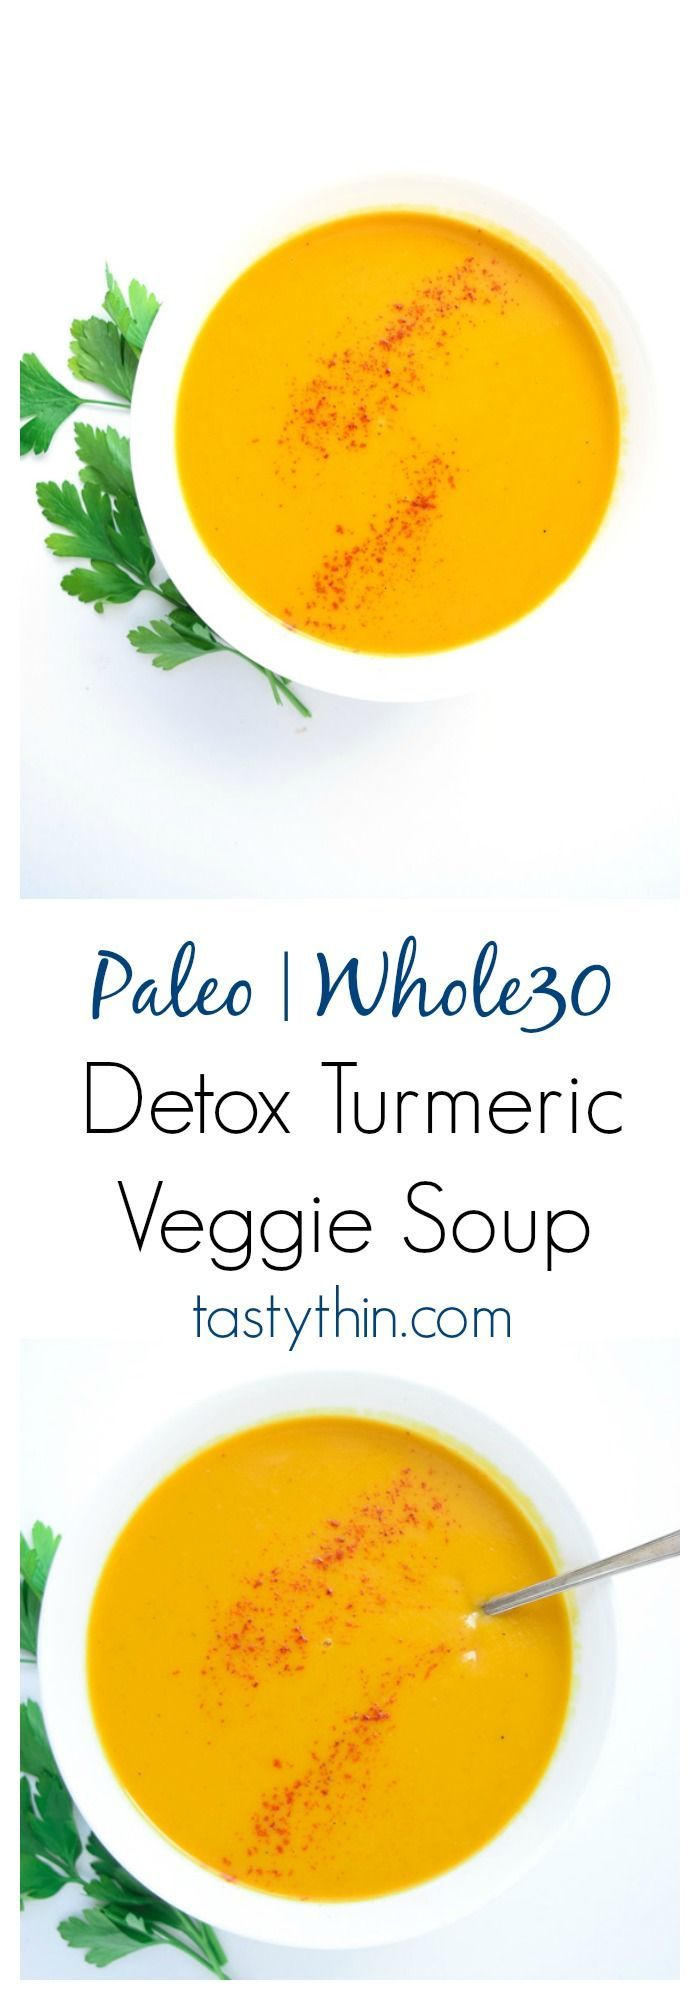 Instant Pot Detox Turmeric Veggie Soup (Whole30 Paleo) - a delicious, savory soup full of cleansing ingredients. Loads of veggies and spices combine for a flavorful, fragrant, and super nutritious recipe! | tastythin.com